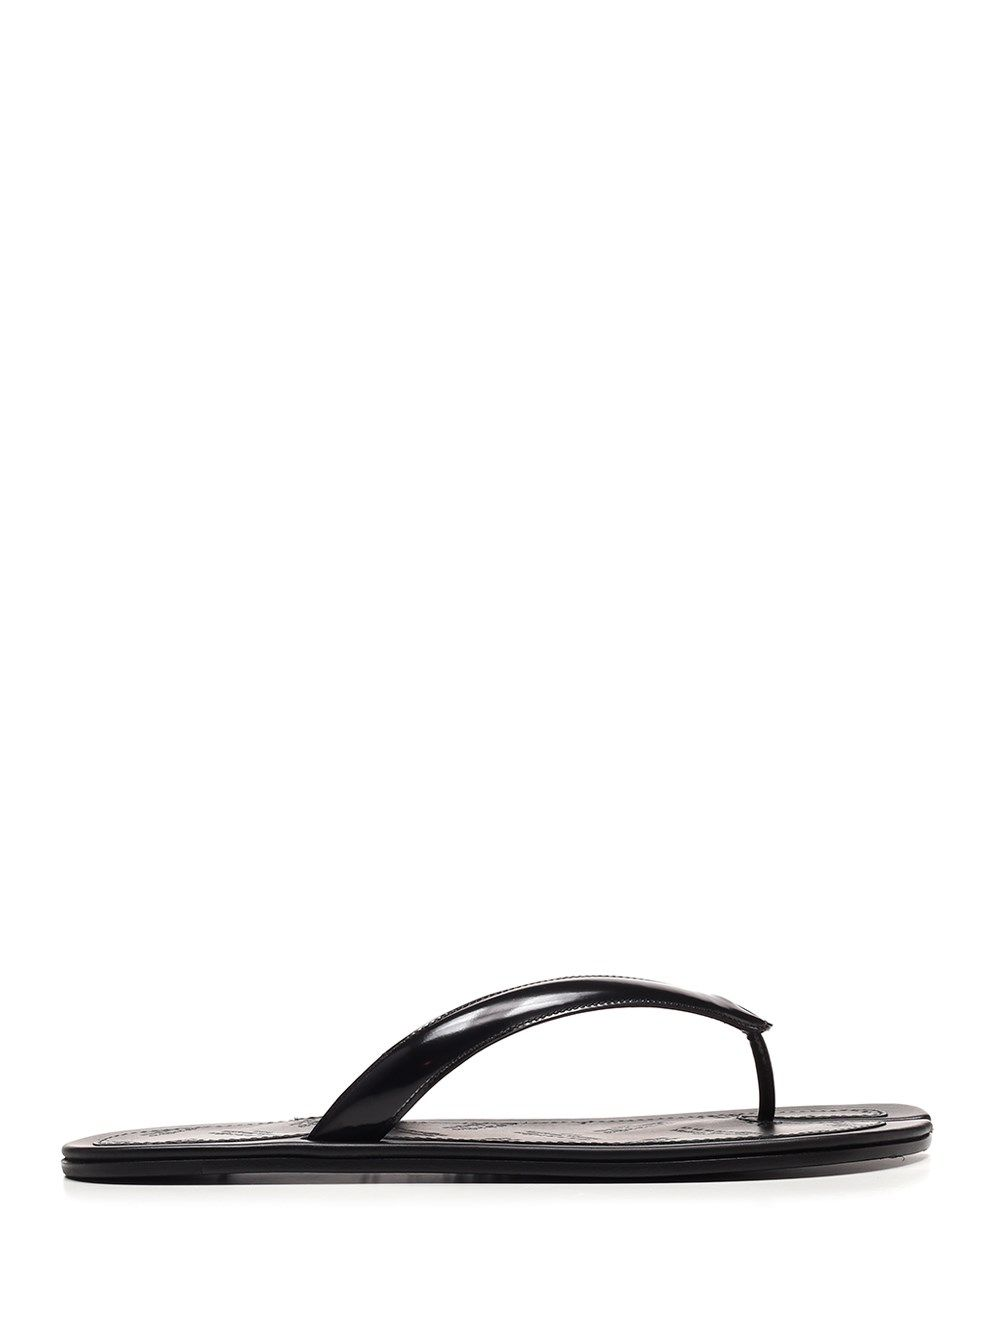 Maison Margiela MAISON MARGIELA MEN'S S57WX0023P3964T8013 BLACK OTHER MATERIALS SANDALS